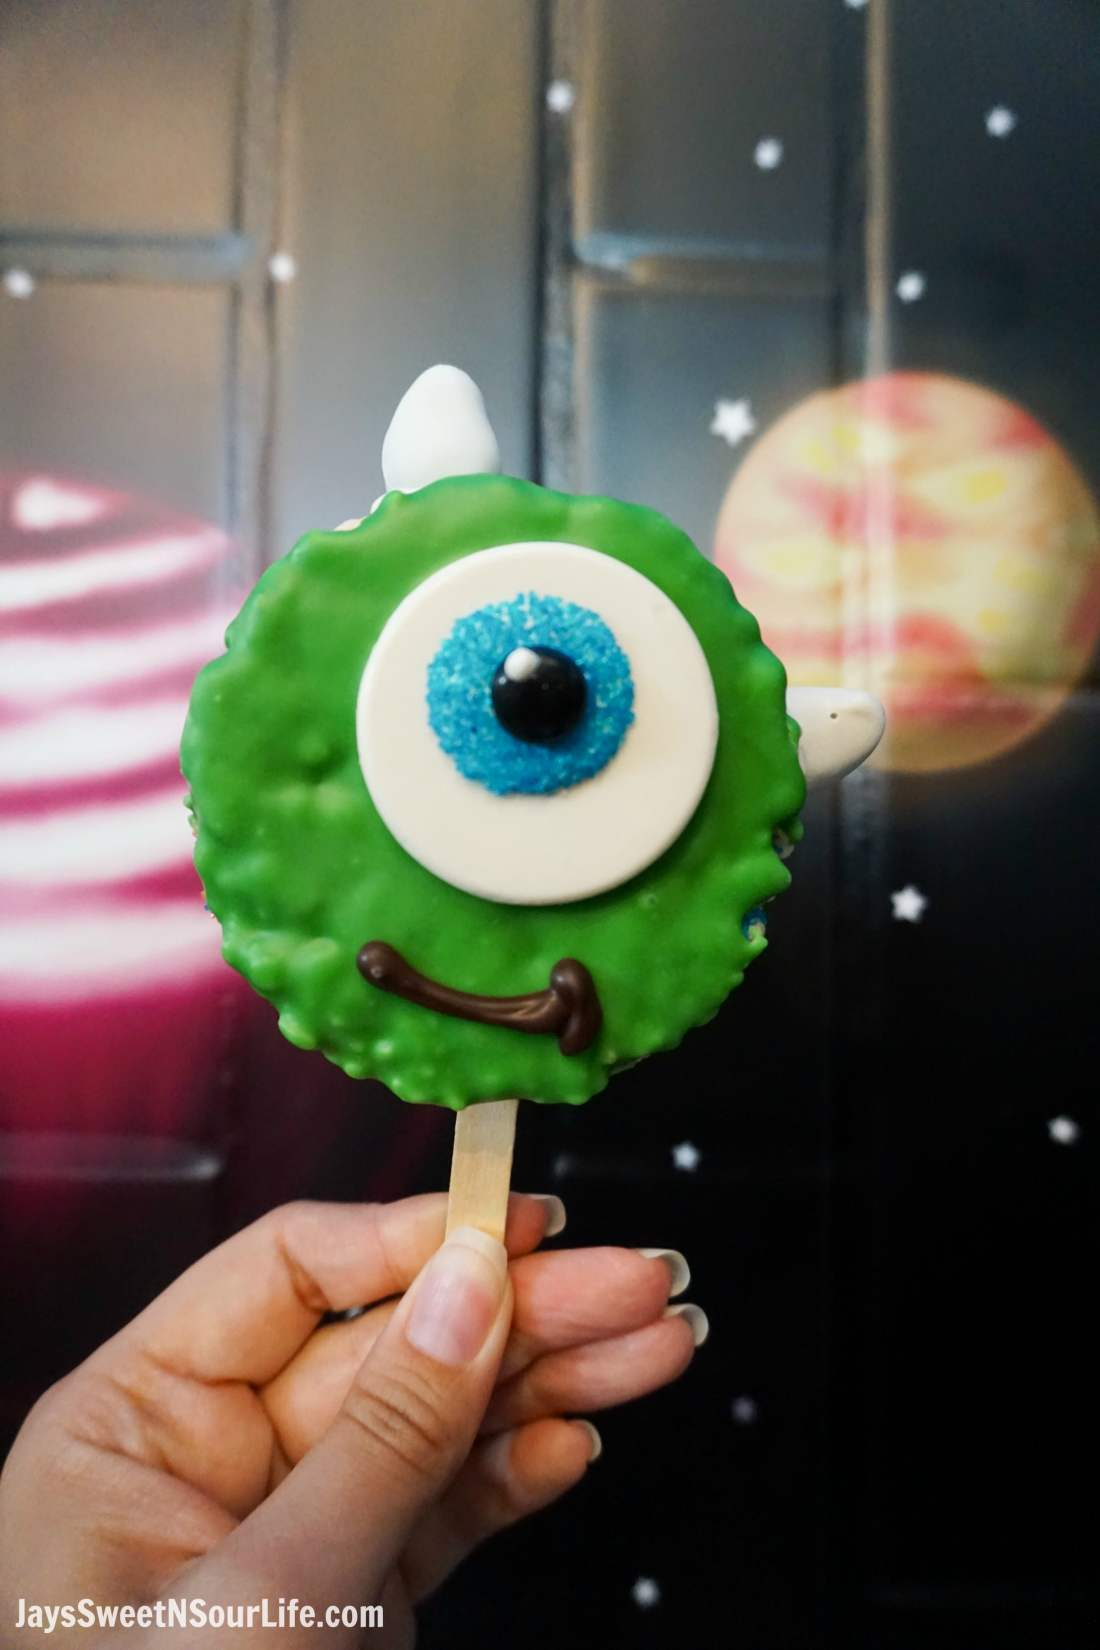 Pixar Fest Mike Wizowski Crisped Rice Treats. Pixar Fest at Disneyland runs from April 13 through September 3rd.